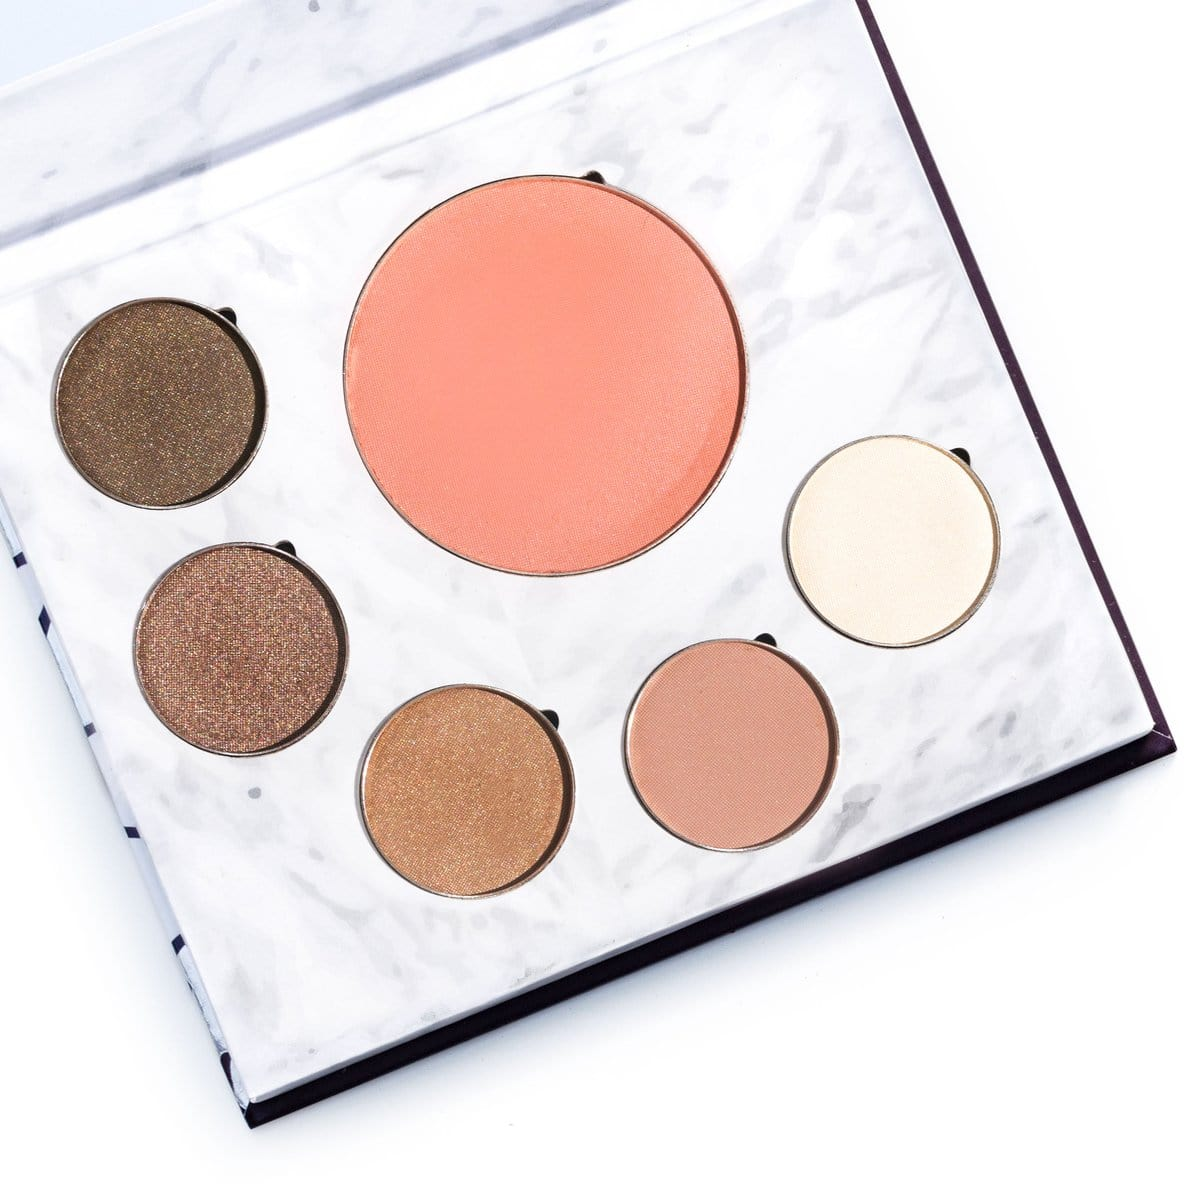 Fitglow Eye & Cheek Palettes